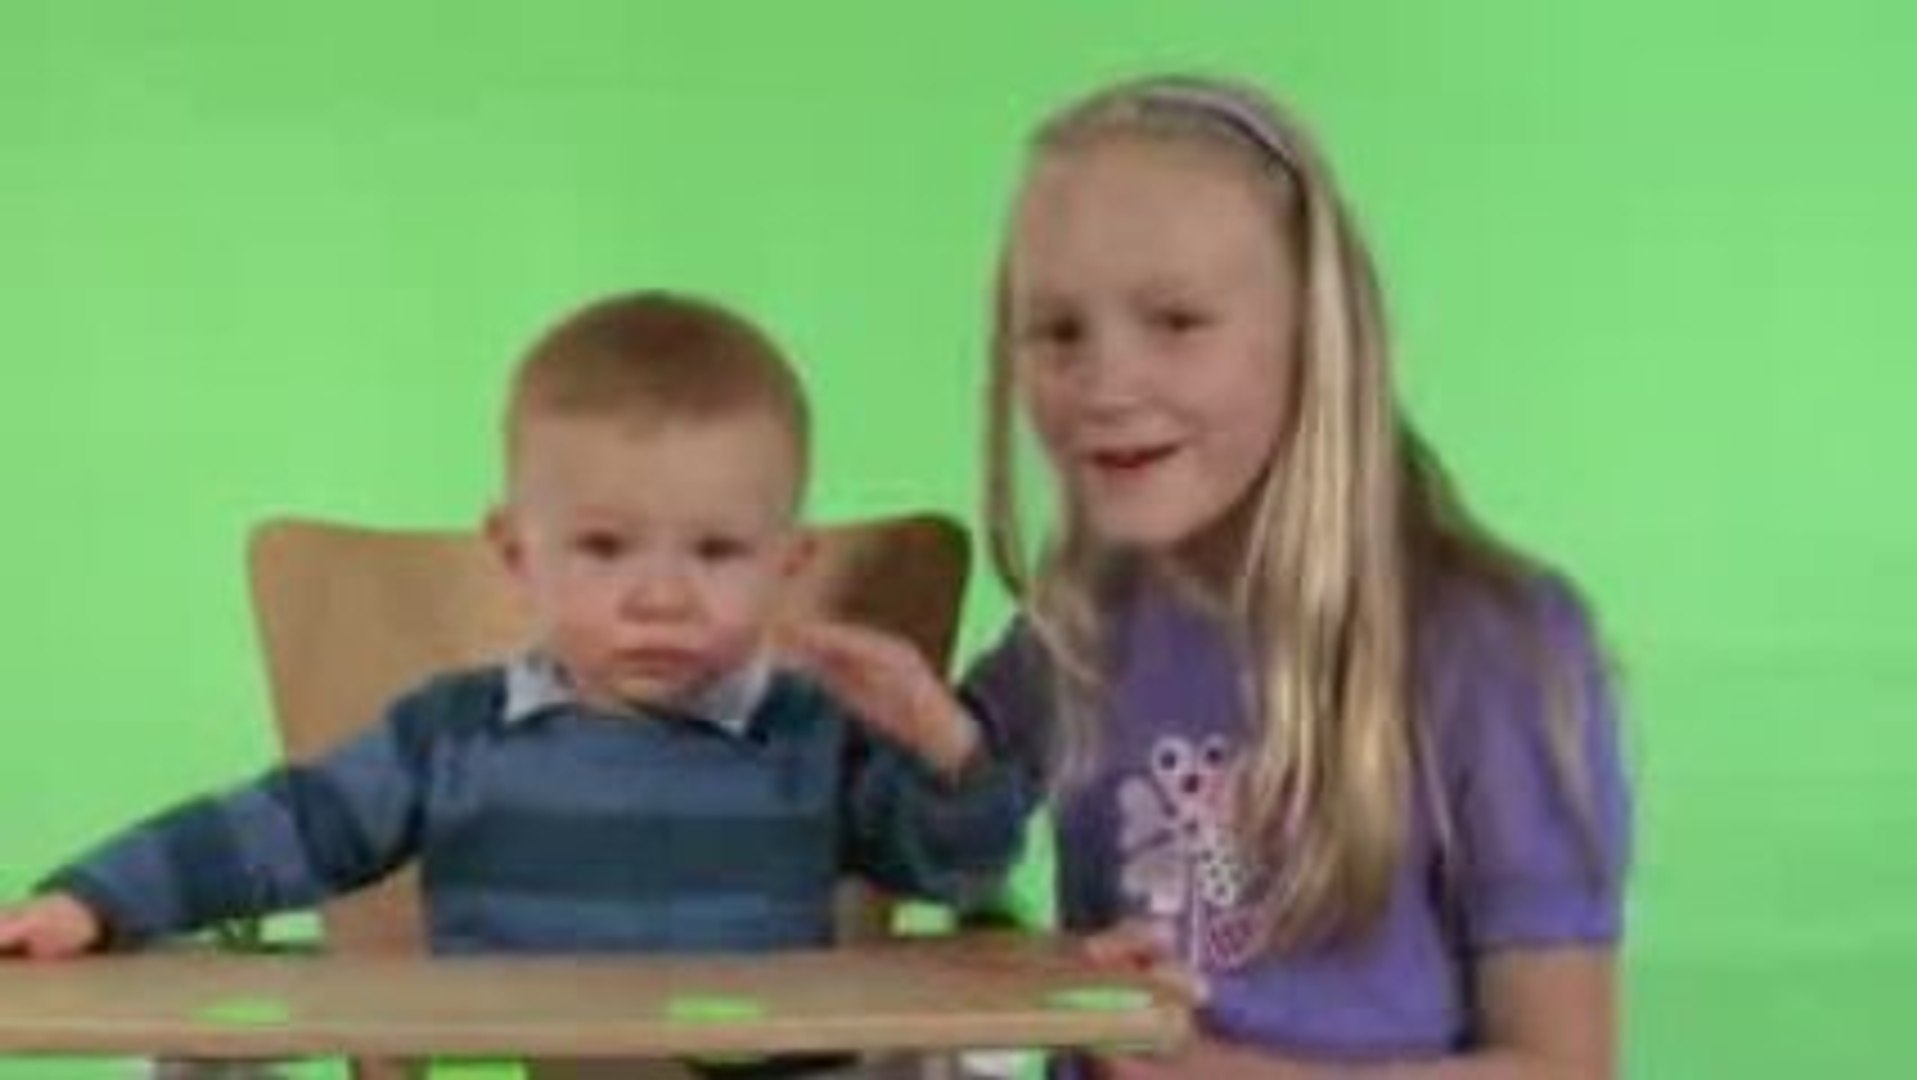 Funny Commercials with Kids Outtakes - Funny Kids Commercial